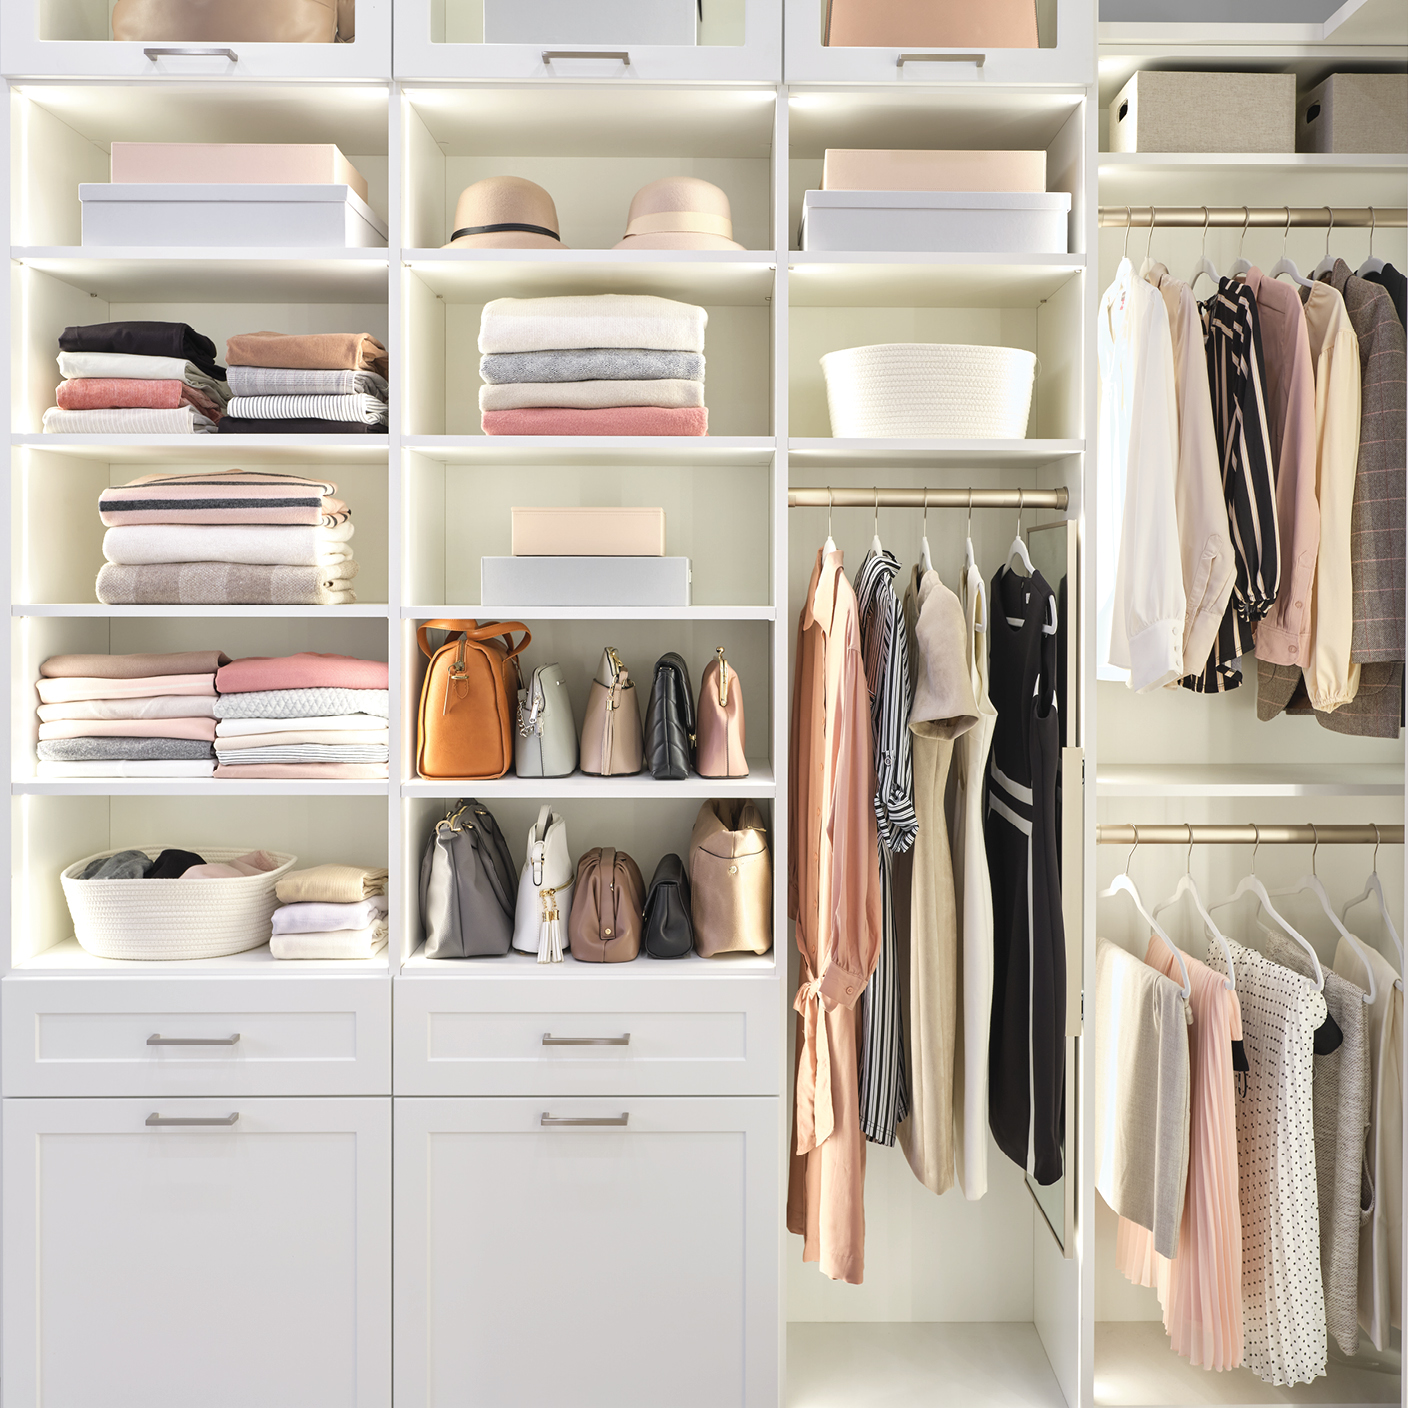 Custom lighting solutions for a boutique closet from Inspired Closets